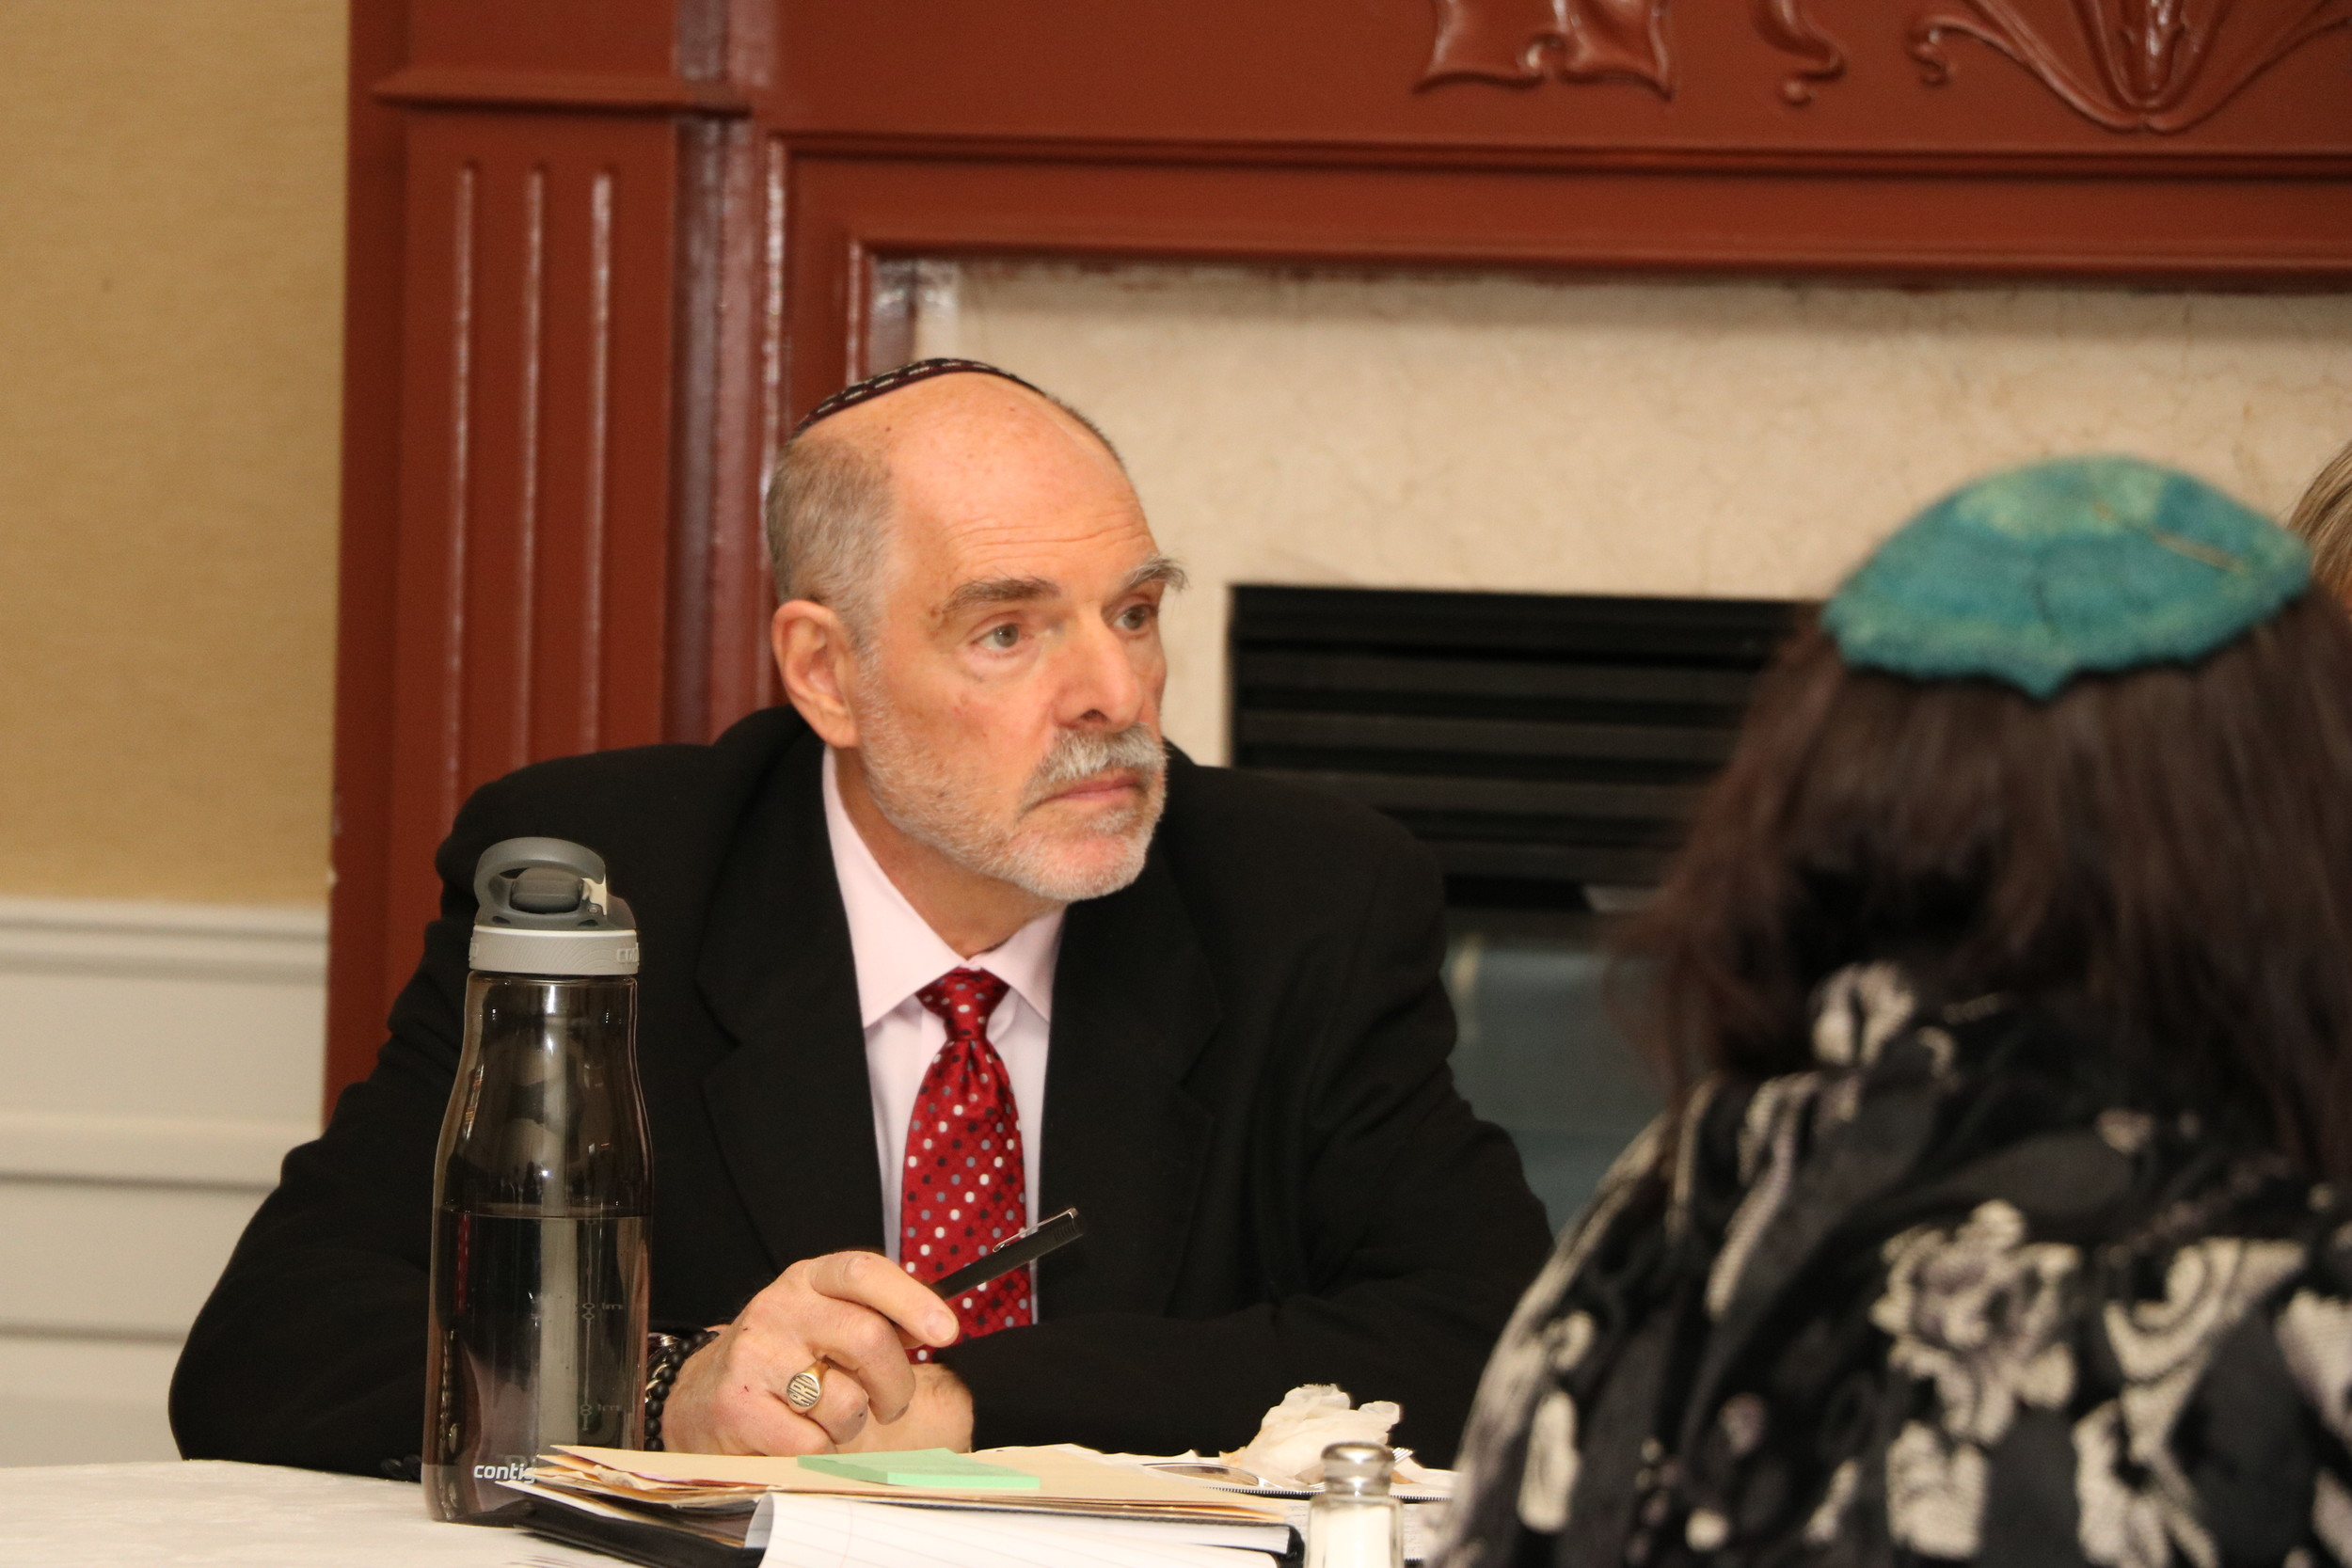 Rabbi Art Vernon of Shaaray Shalom, in West Hempstead, led a Feb. 7 meeting at which participants discussed creating an interfaith group of Muslims, Jews and Christians in Nassau County.